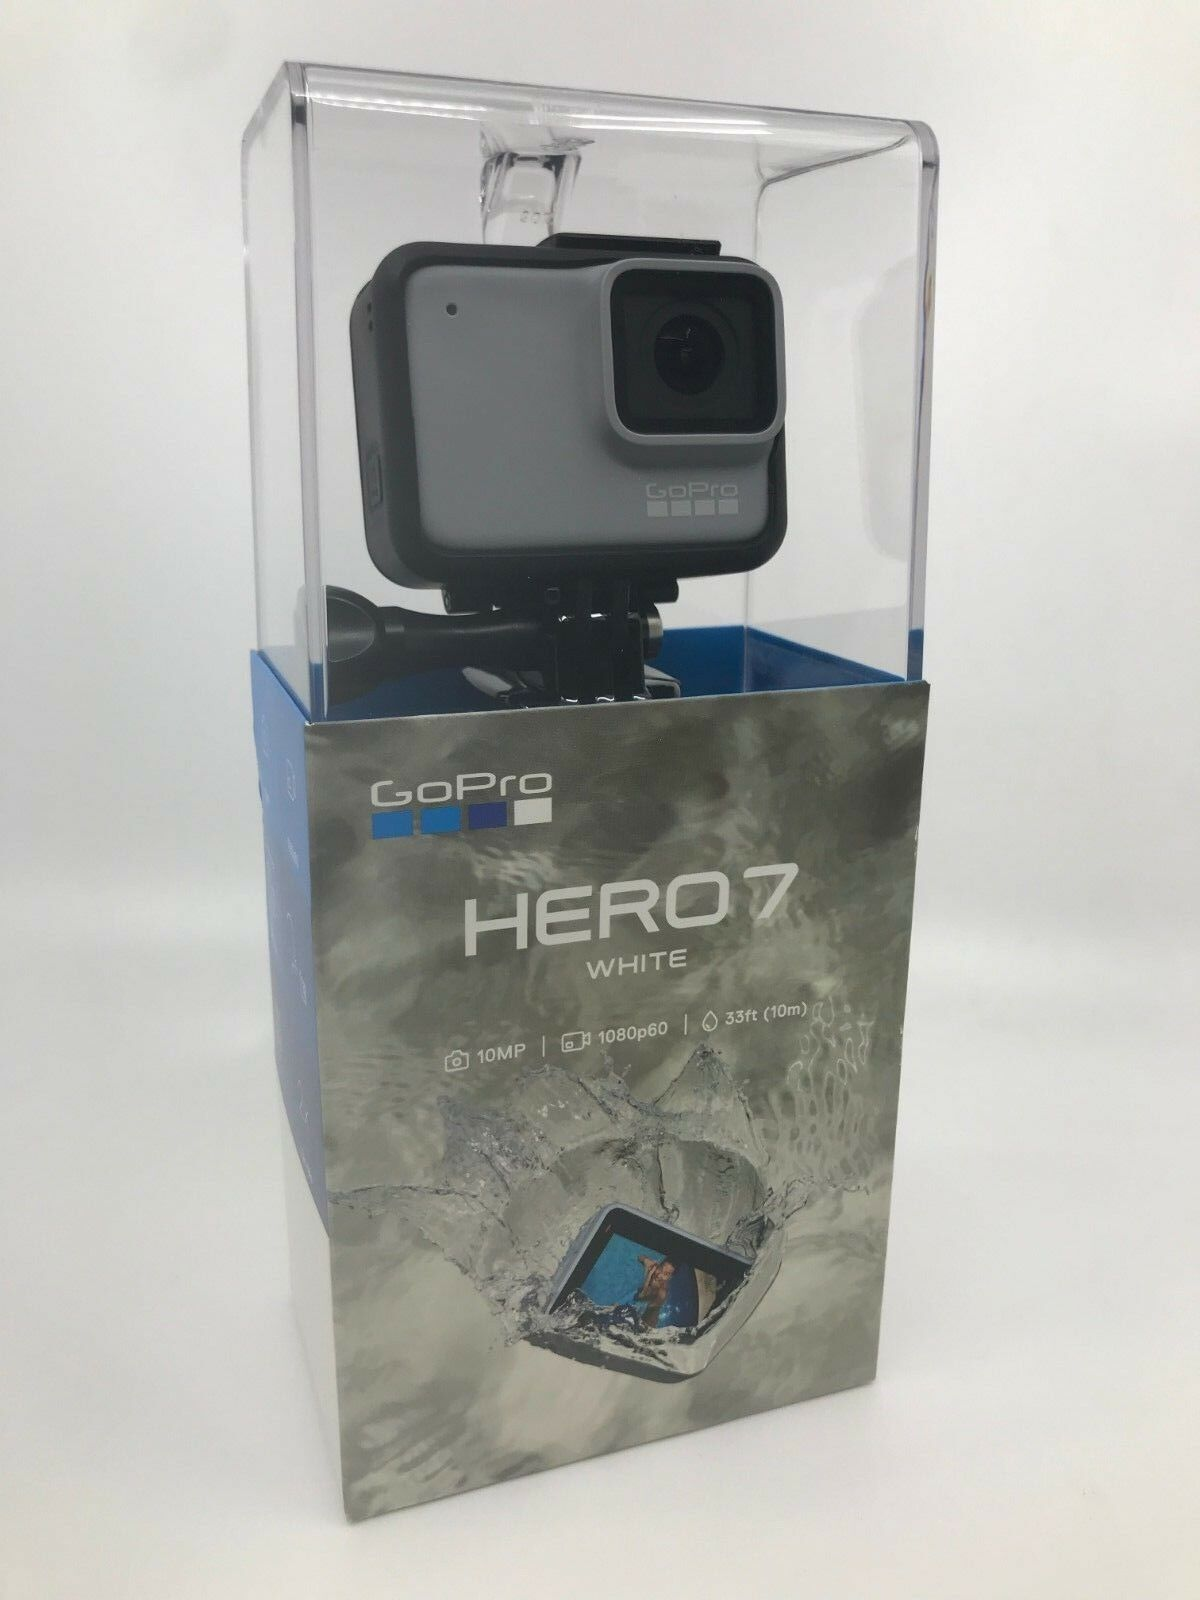 New GoPro HERO7 White Waterproof Action Camera, Touch Screen, 1440p HD Video Featured